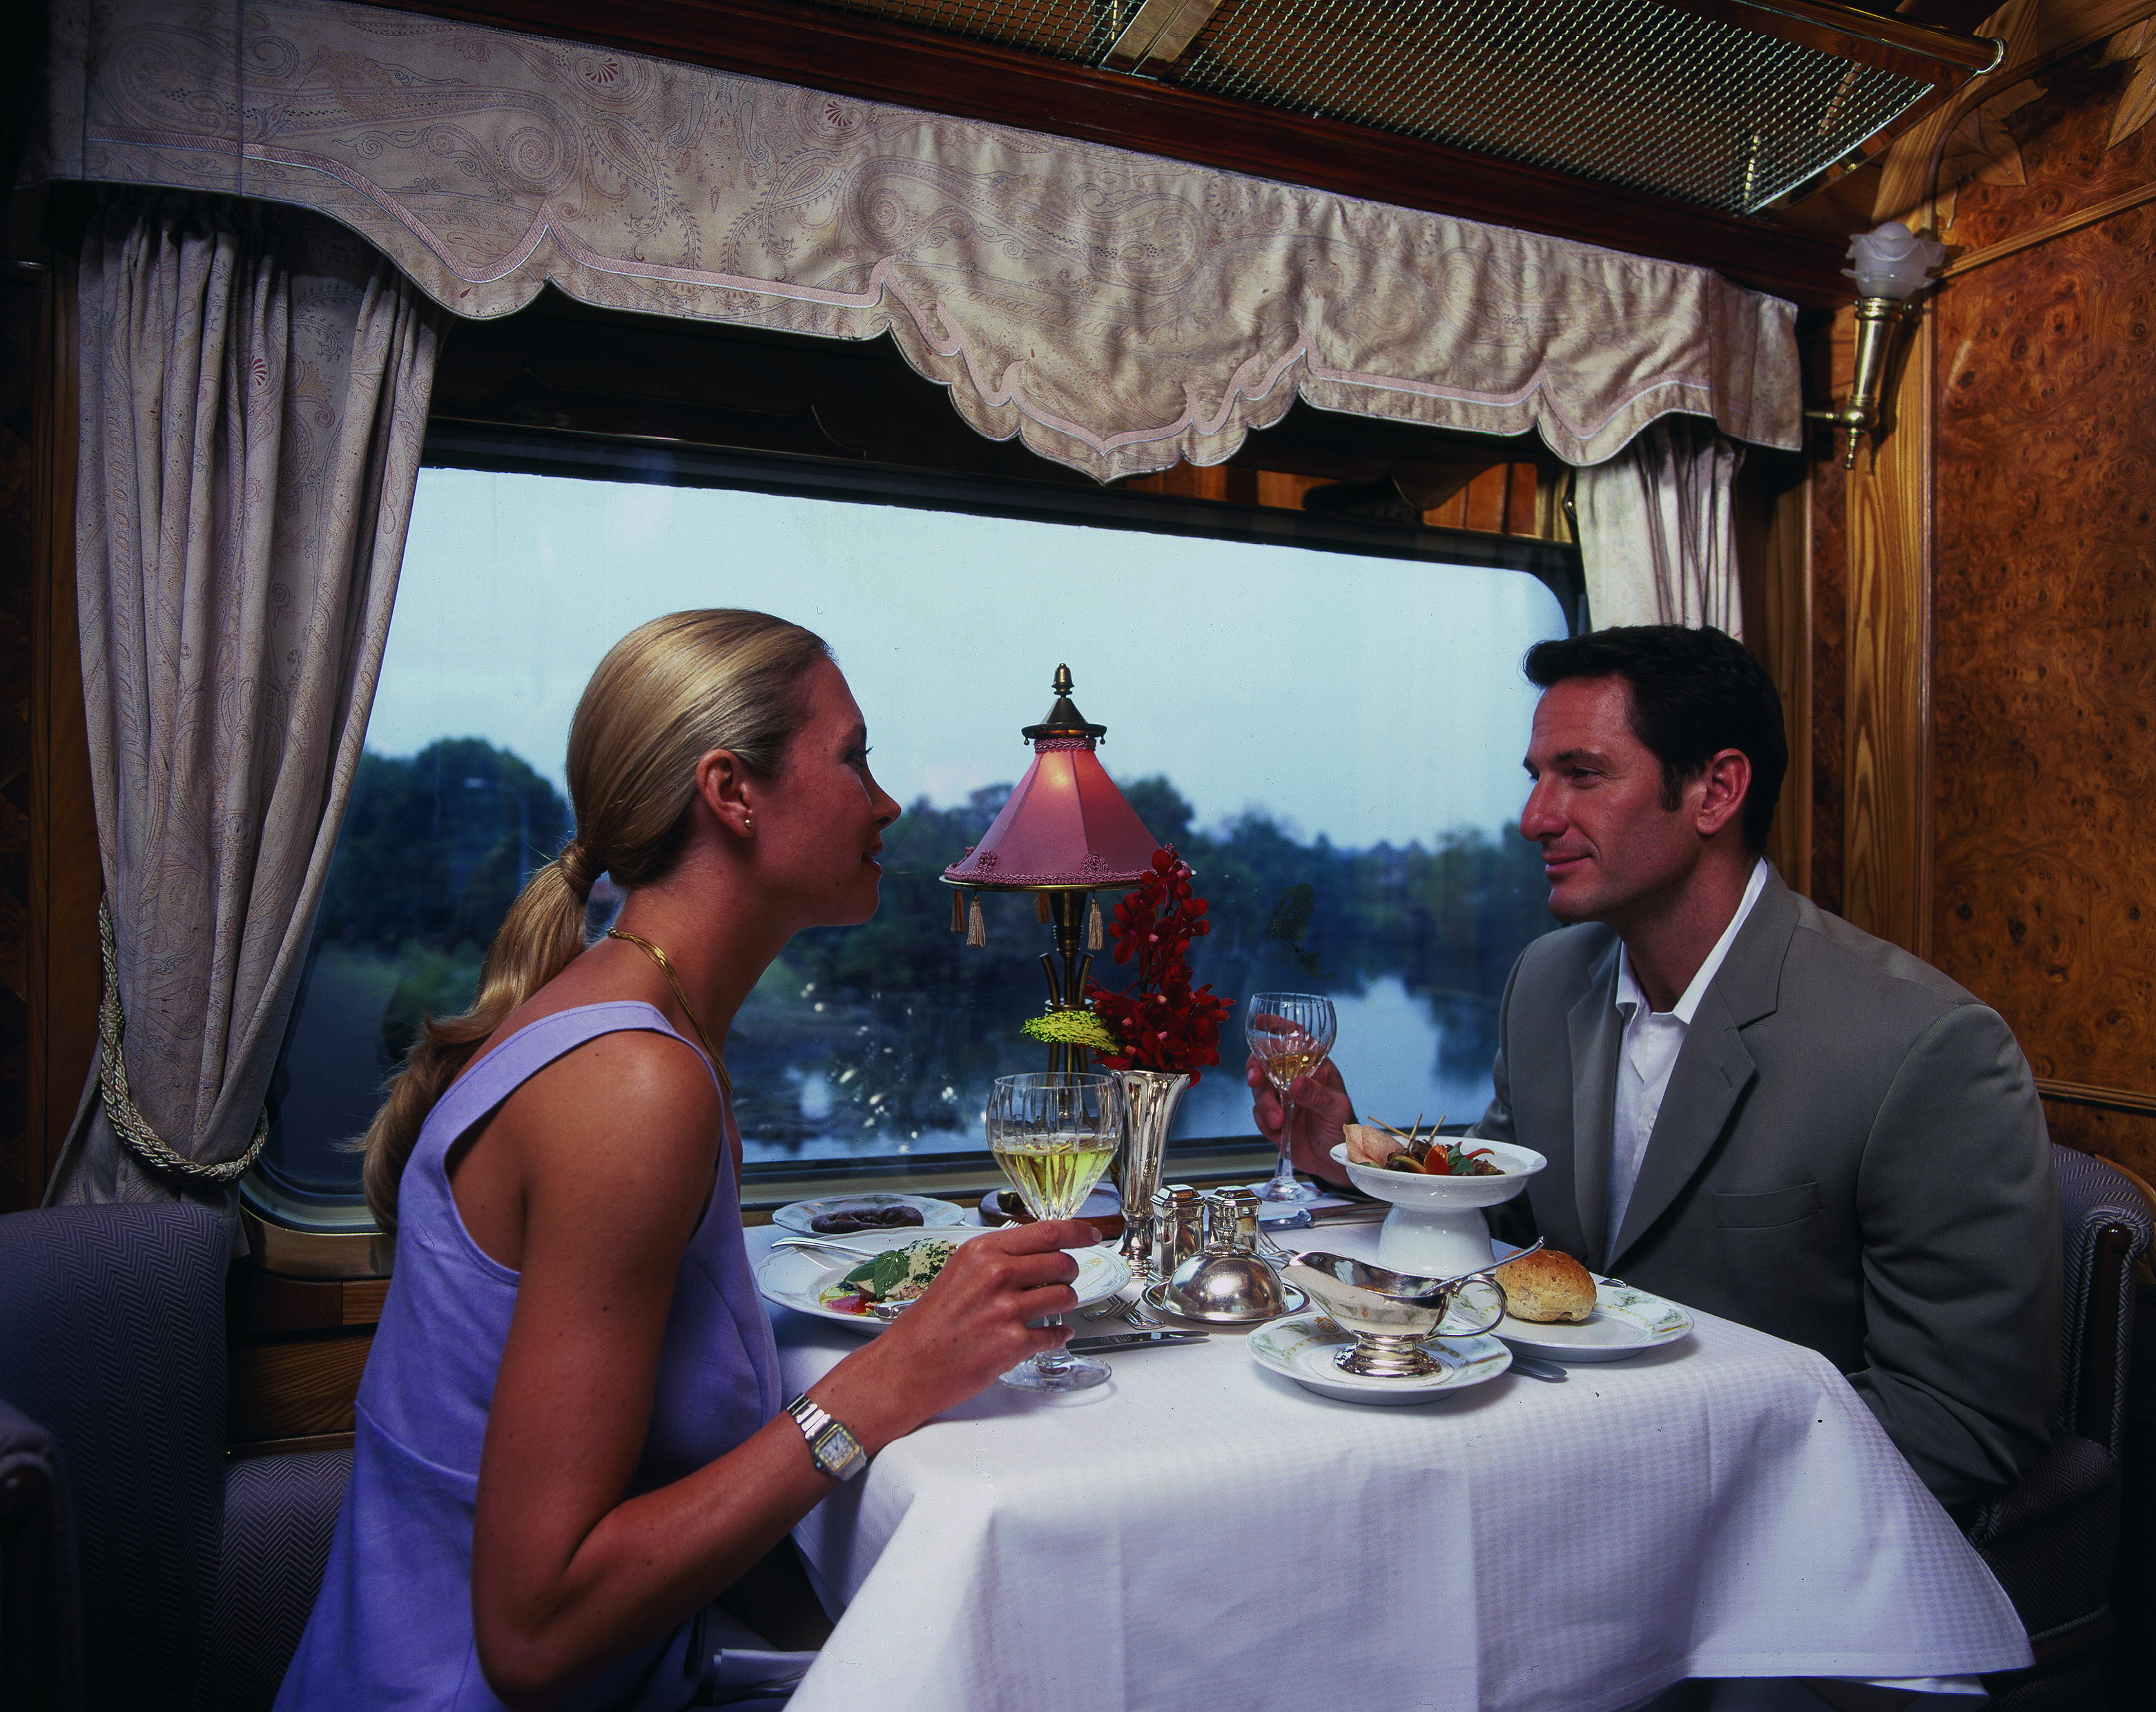 Aimed at bringing millionaires and beautiful singles together on a platform, and enabling them to find opportunities for love and romance(image: Train Chartering & Private Rail Cars/Flickr)